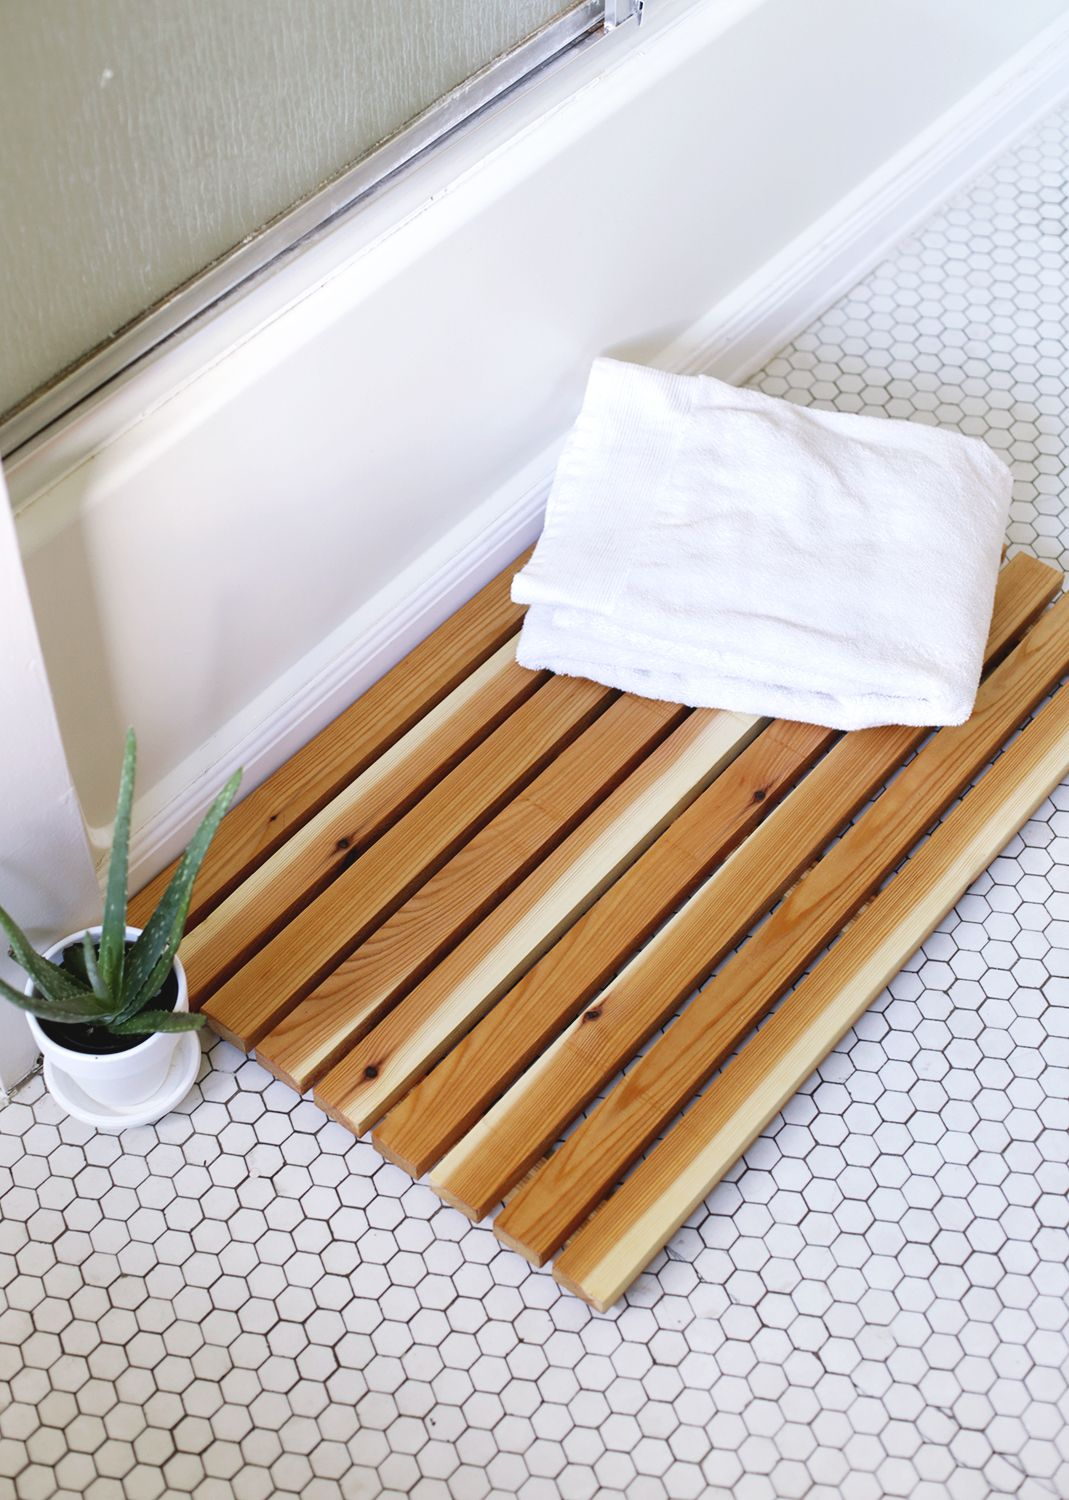 diy cedar bath mat  bath mat bath and fabrics - diy cedar bath mat